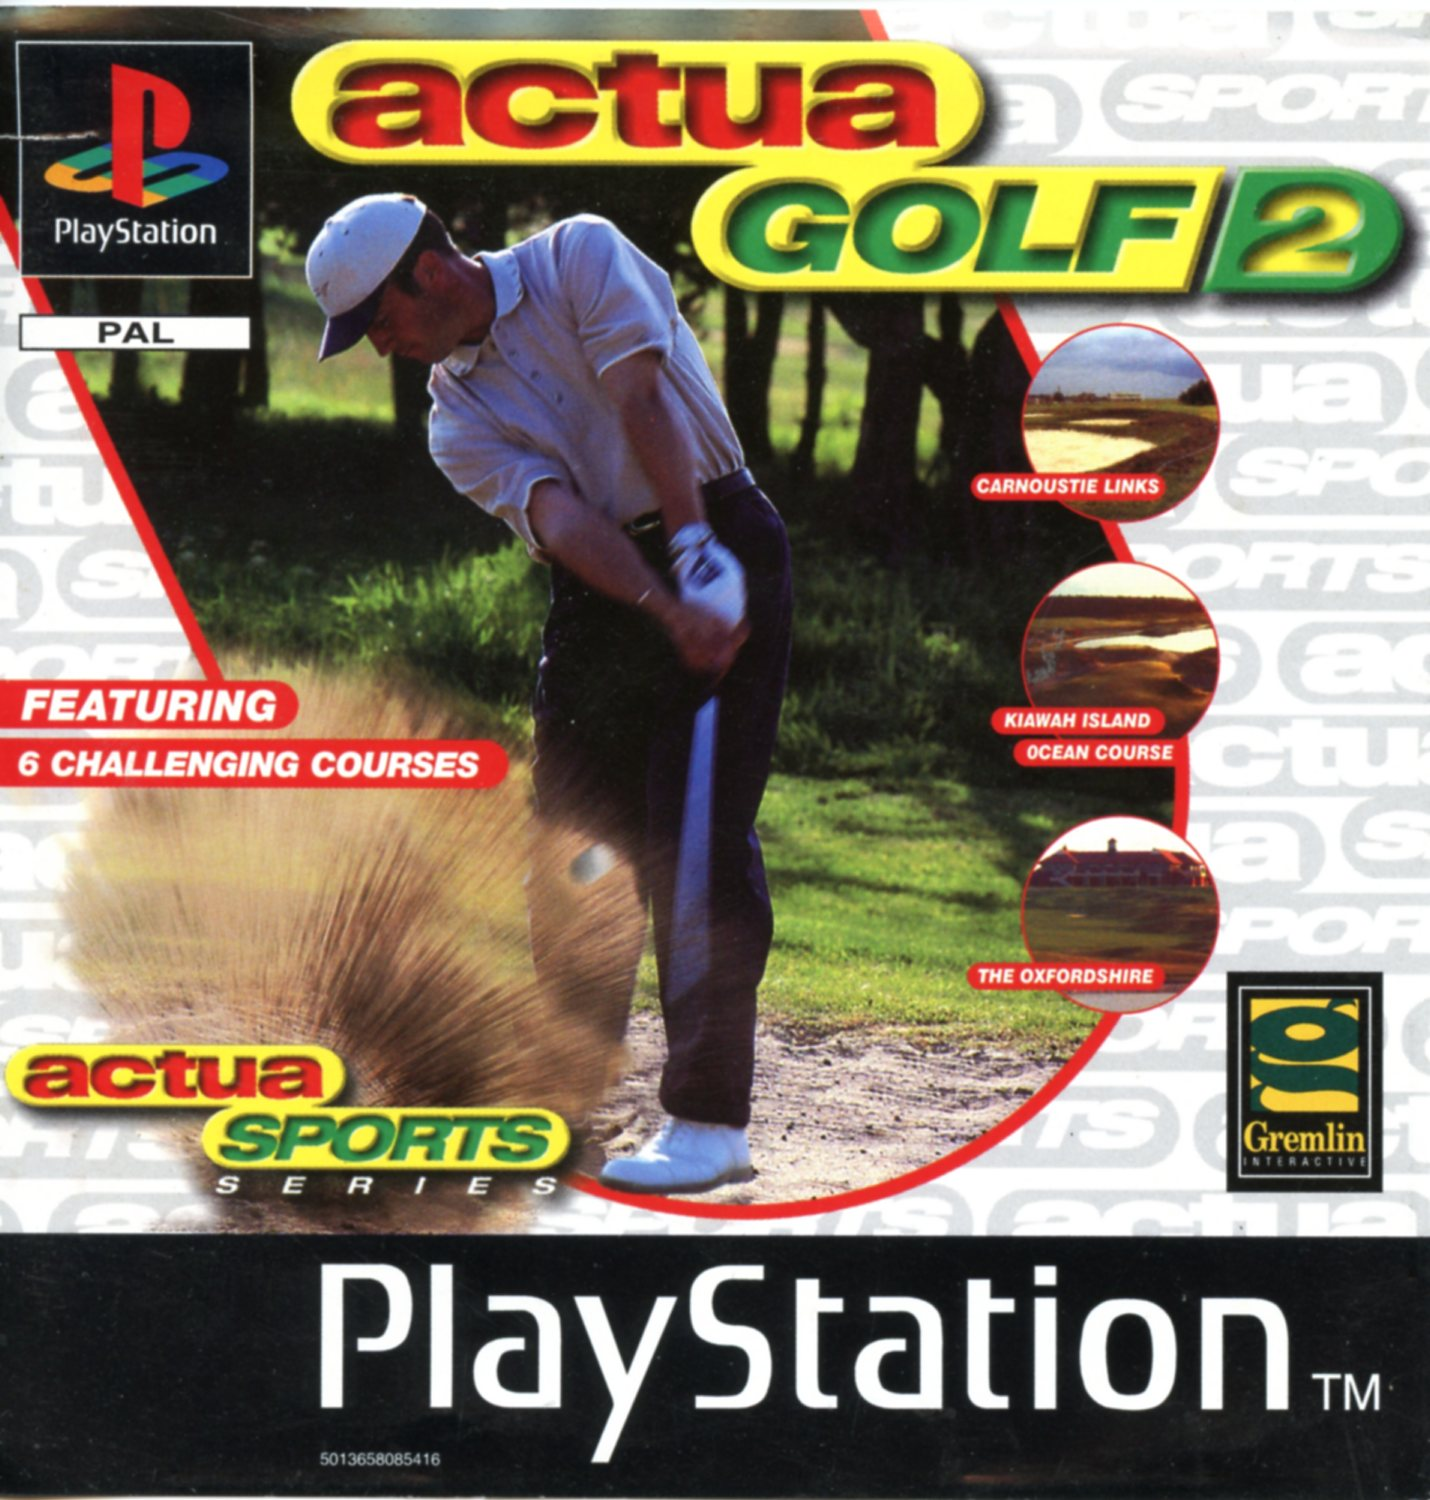 Actua Golf 2 (Playstation)